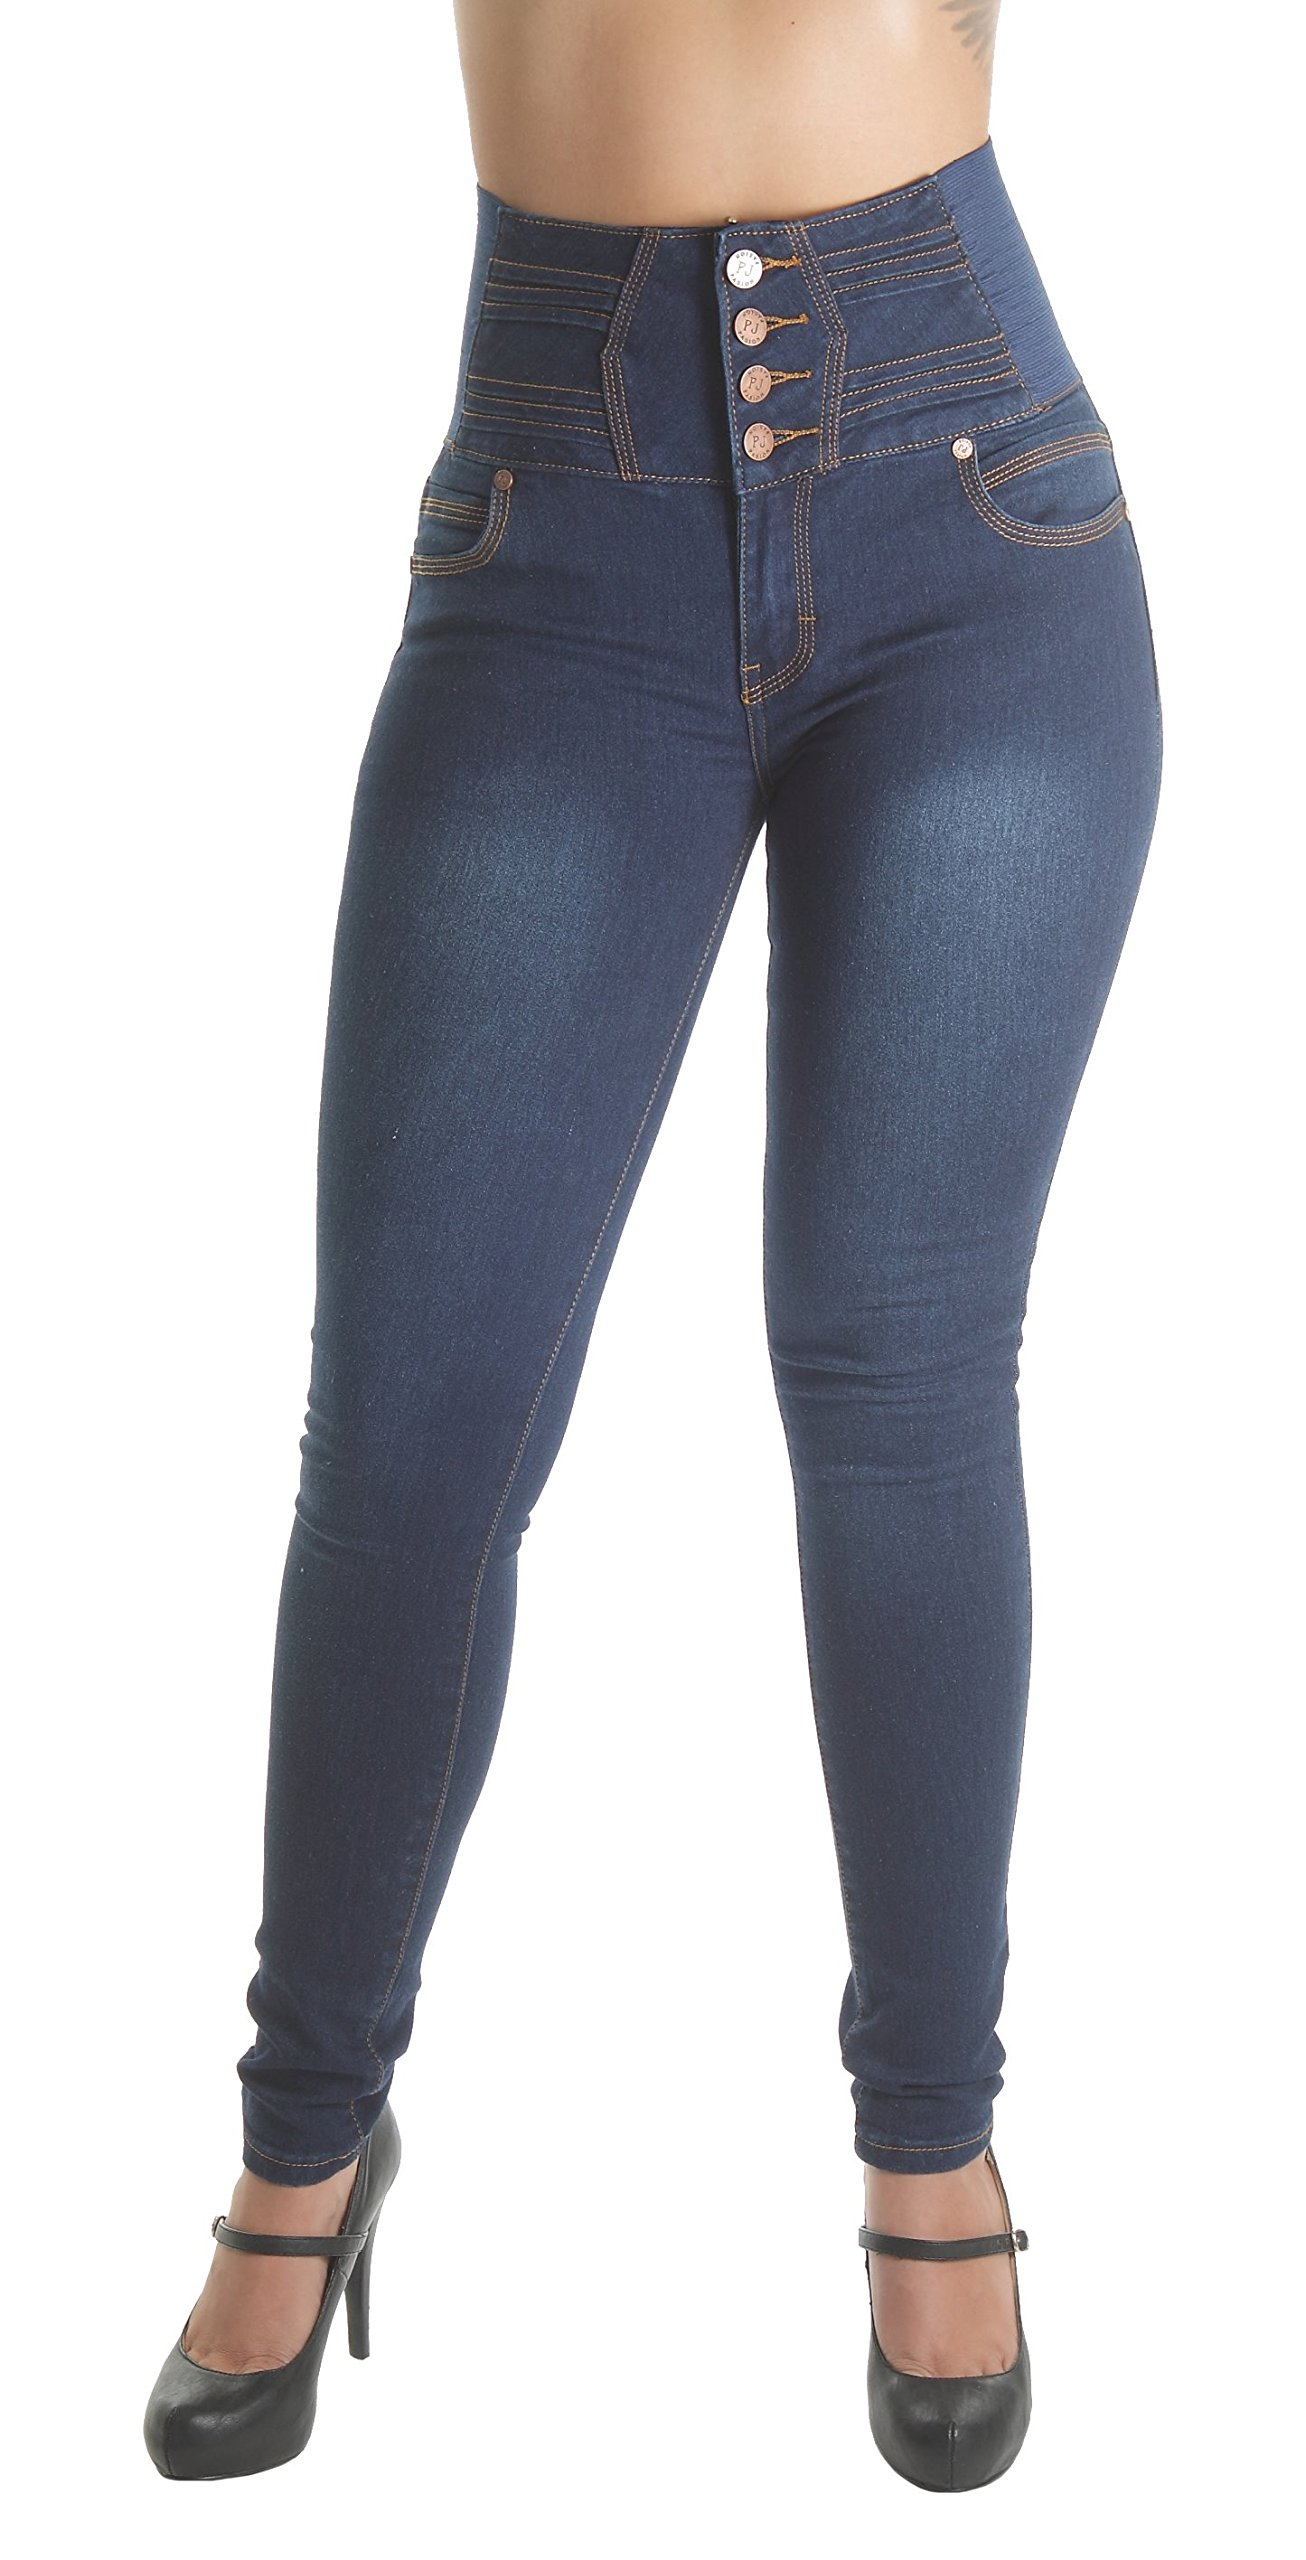 Fashion2Love WG0059B – Colombian Design, Levanta Cola, Elastic High Waist Skinny Jeans in Navy Size 17